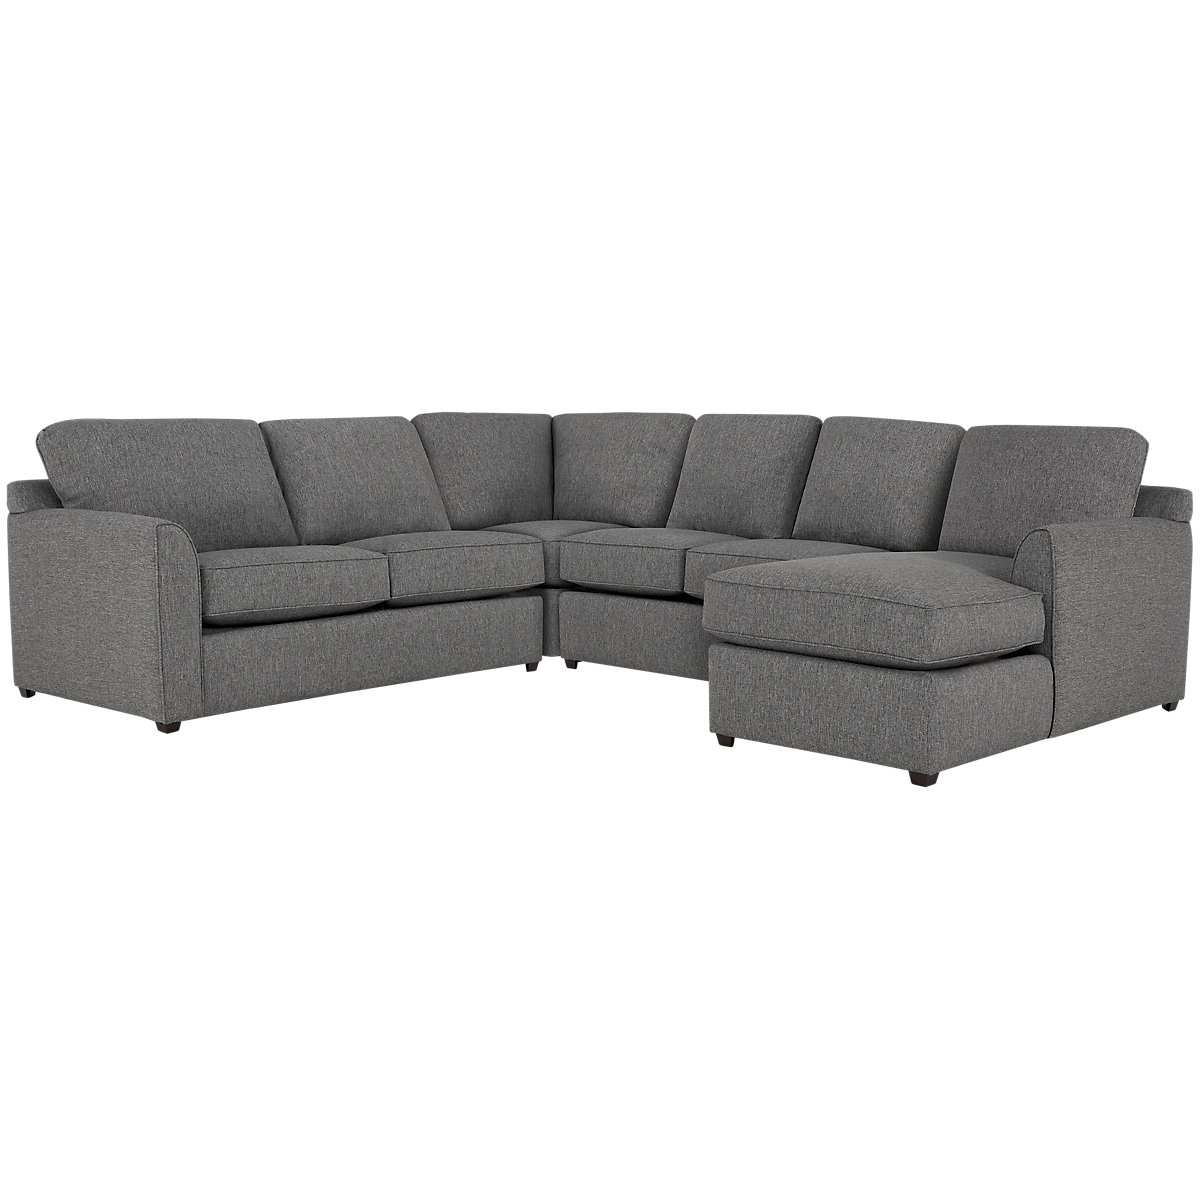 Asheville Gray Fabric Medium Right Chaise Sectional